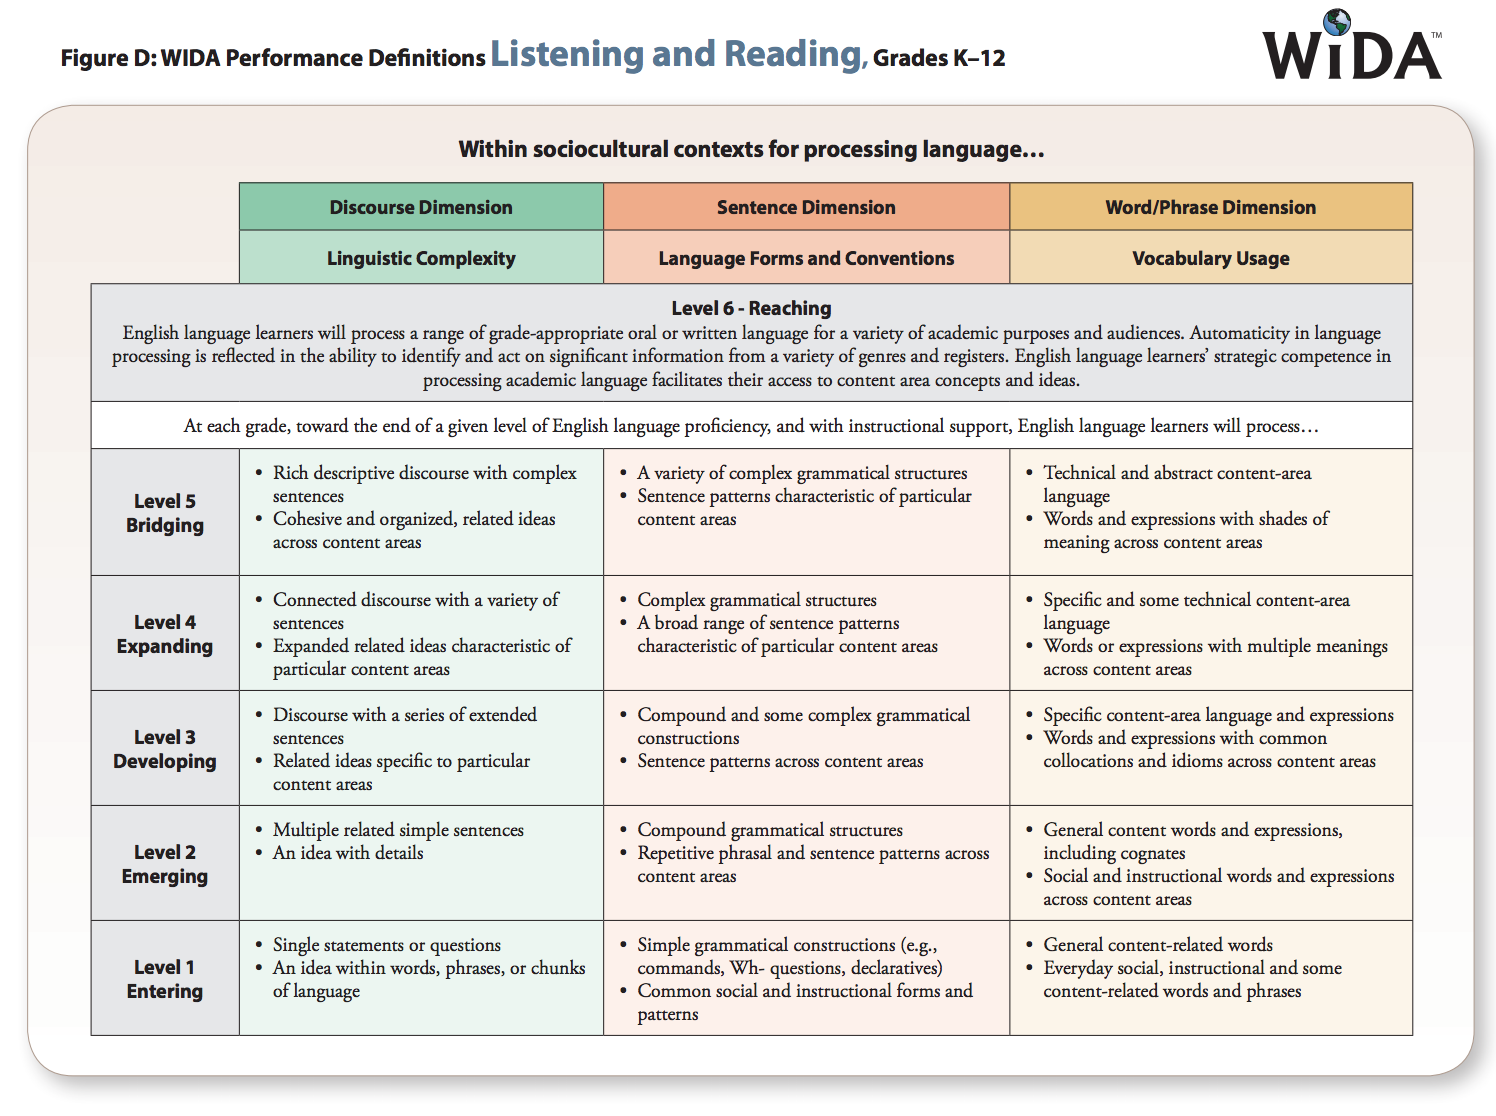 screenshot of Performance Definitions for Listening and Reading, page 6. https://wida.wisc.edu/sites/default/files/resource/2012-ELD-Standards.pdf